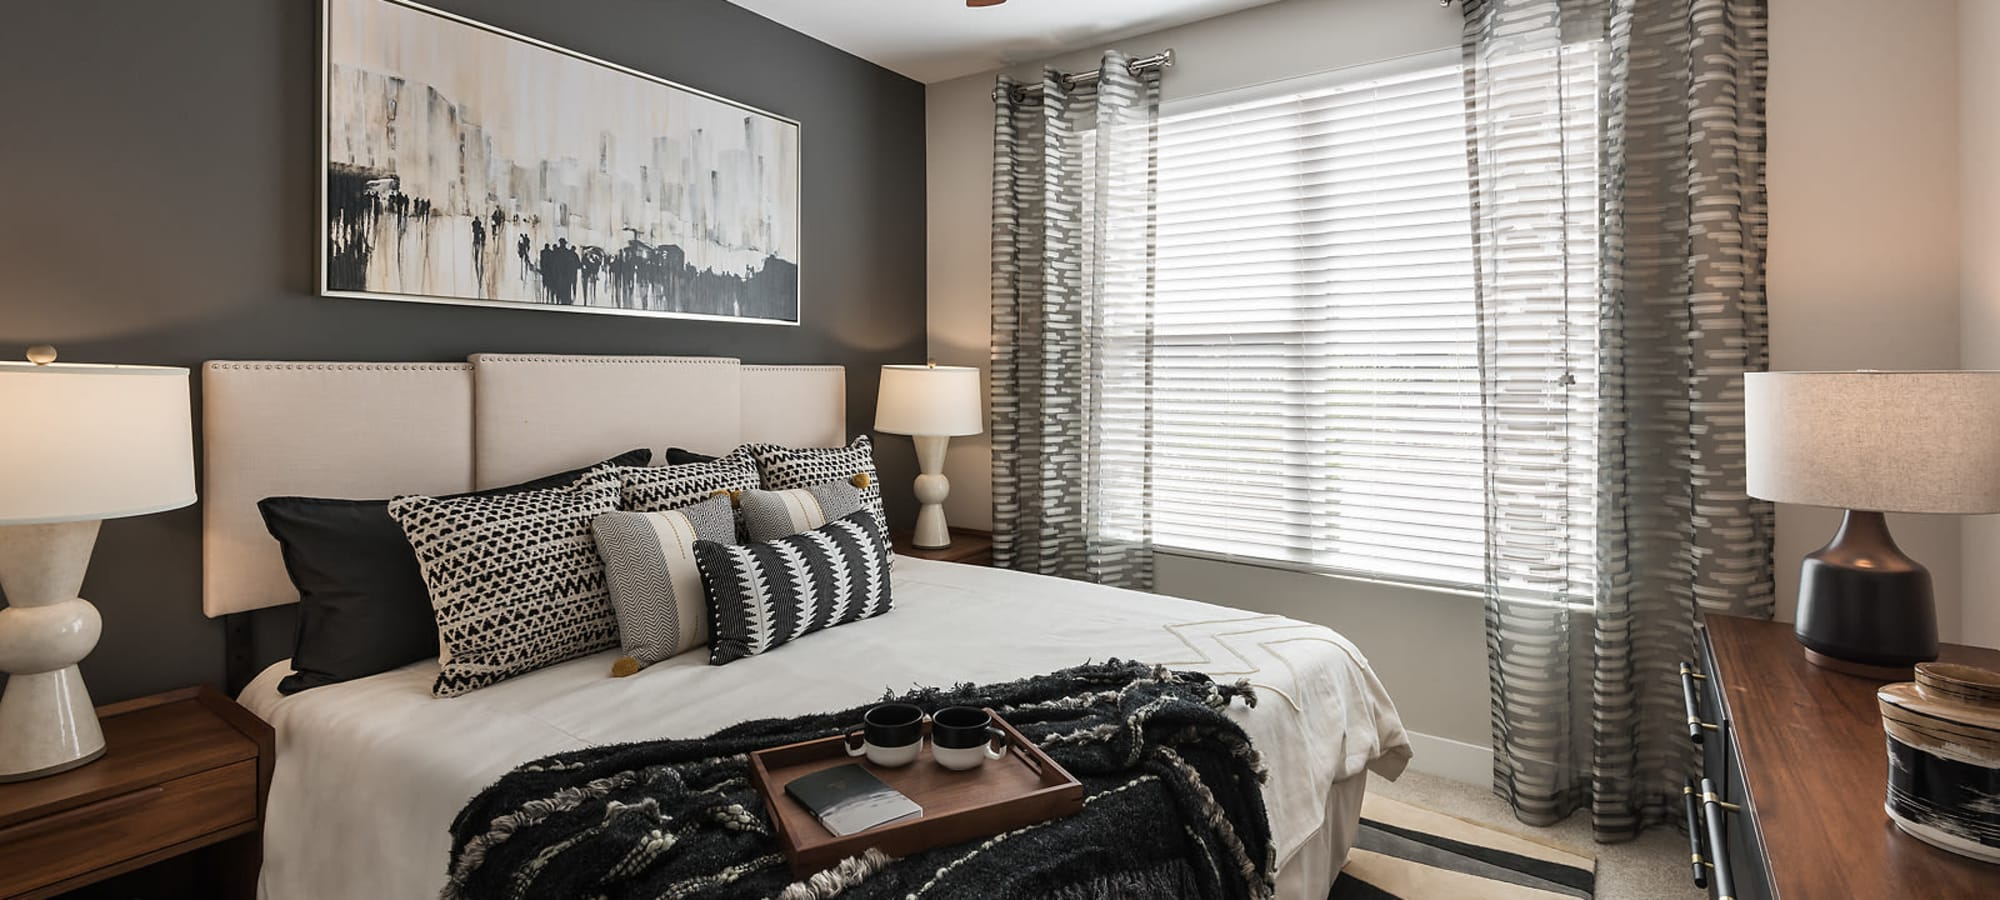 Large bedroom windows at The Halsten at Chauncey Lane in Scottsdale, Arizona